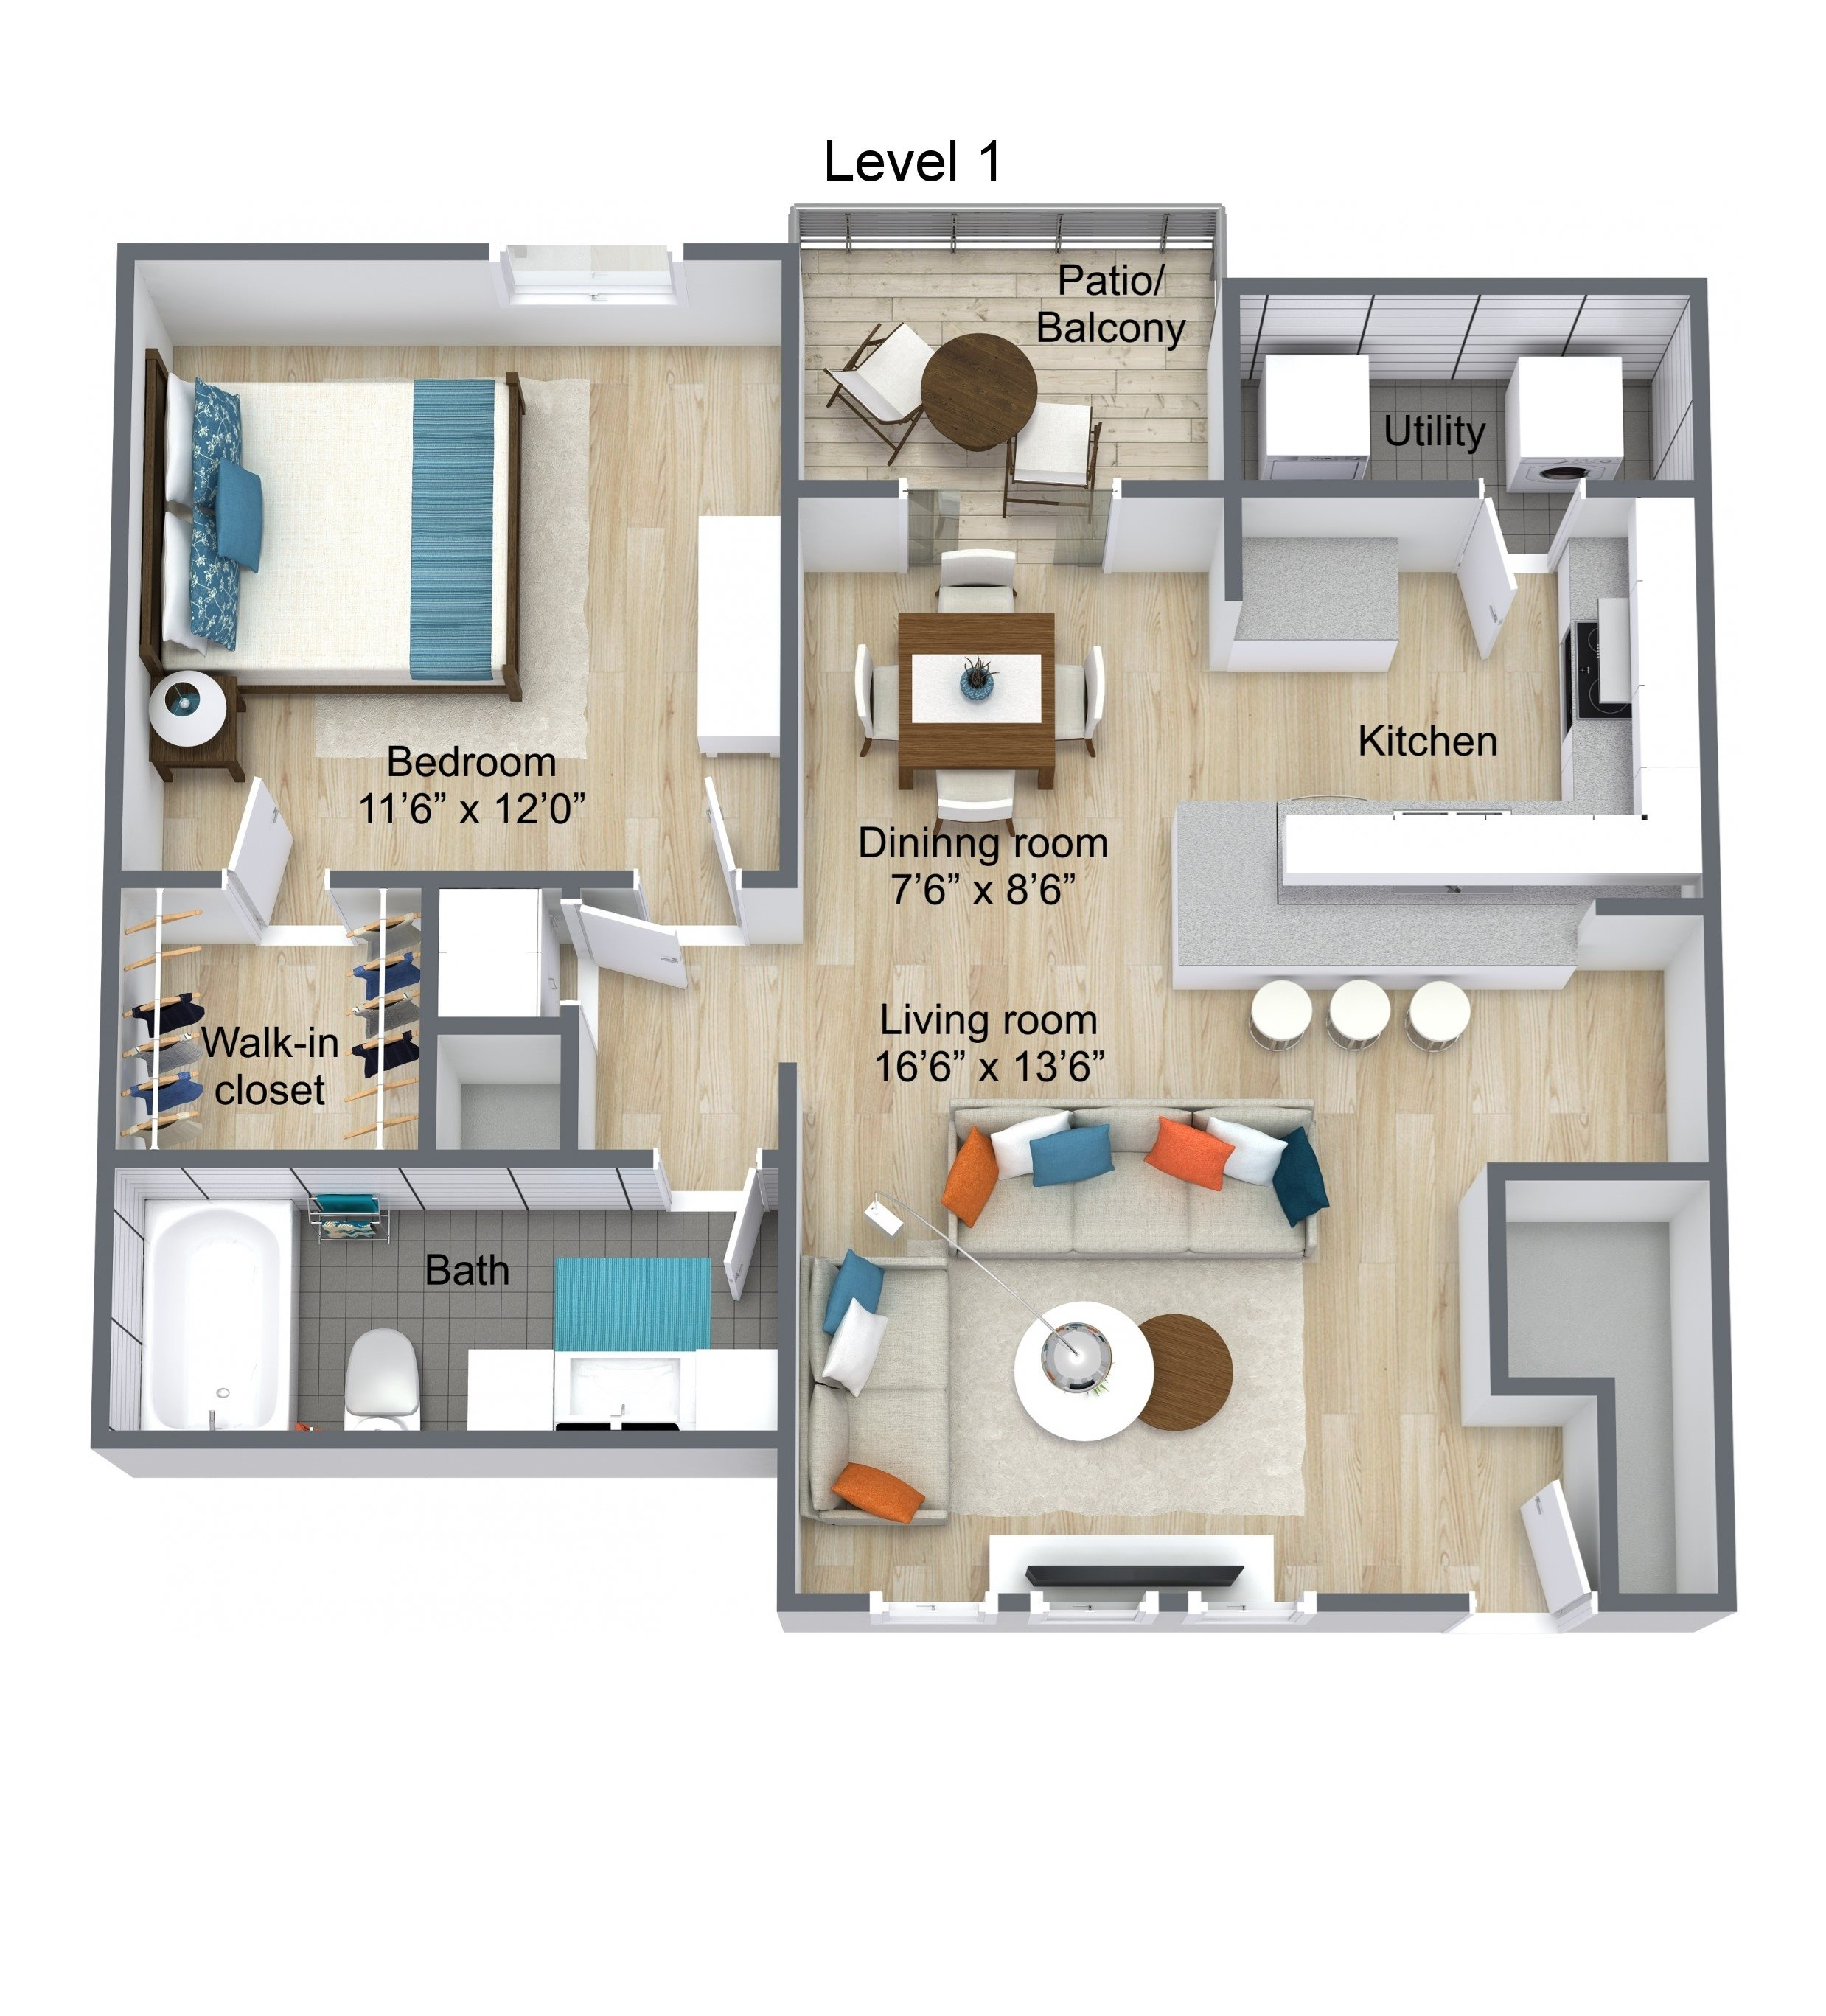 The Professional Floor Plan 2